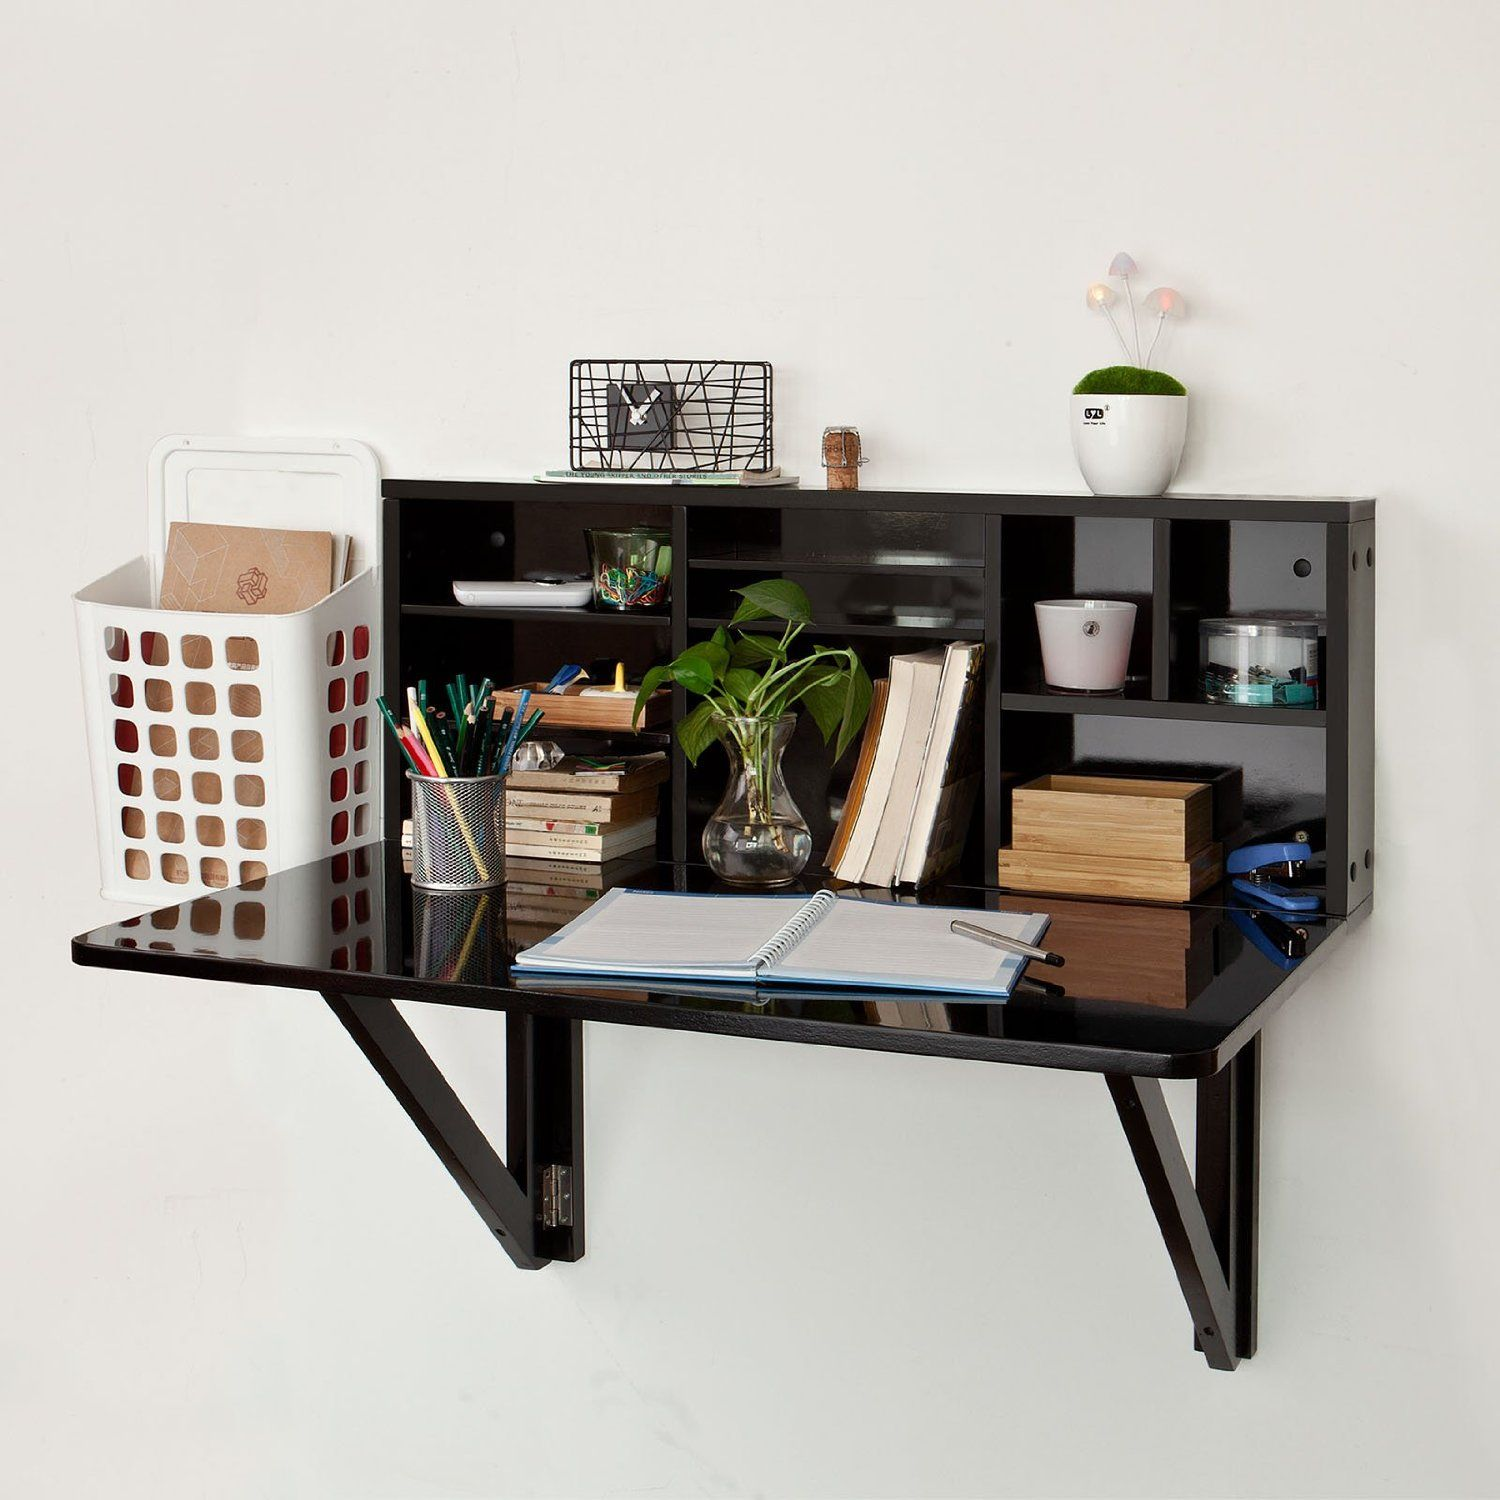 wall mounted desk with shelves photo - 4